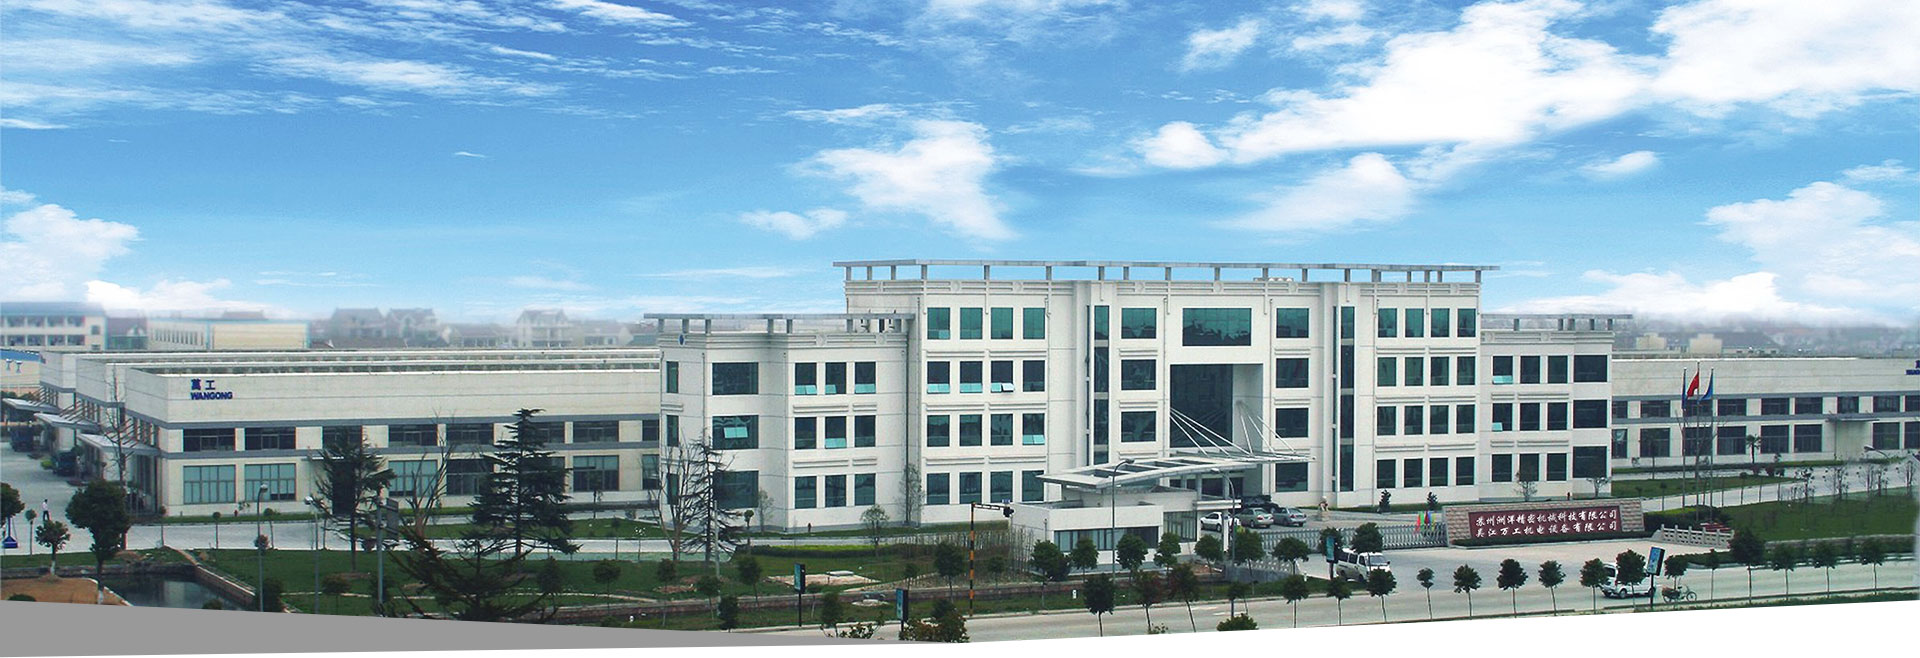 JiangSu Wanggong workers Technology Group